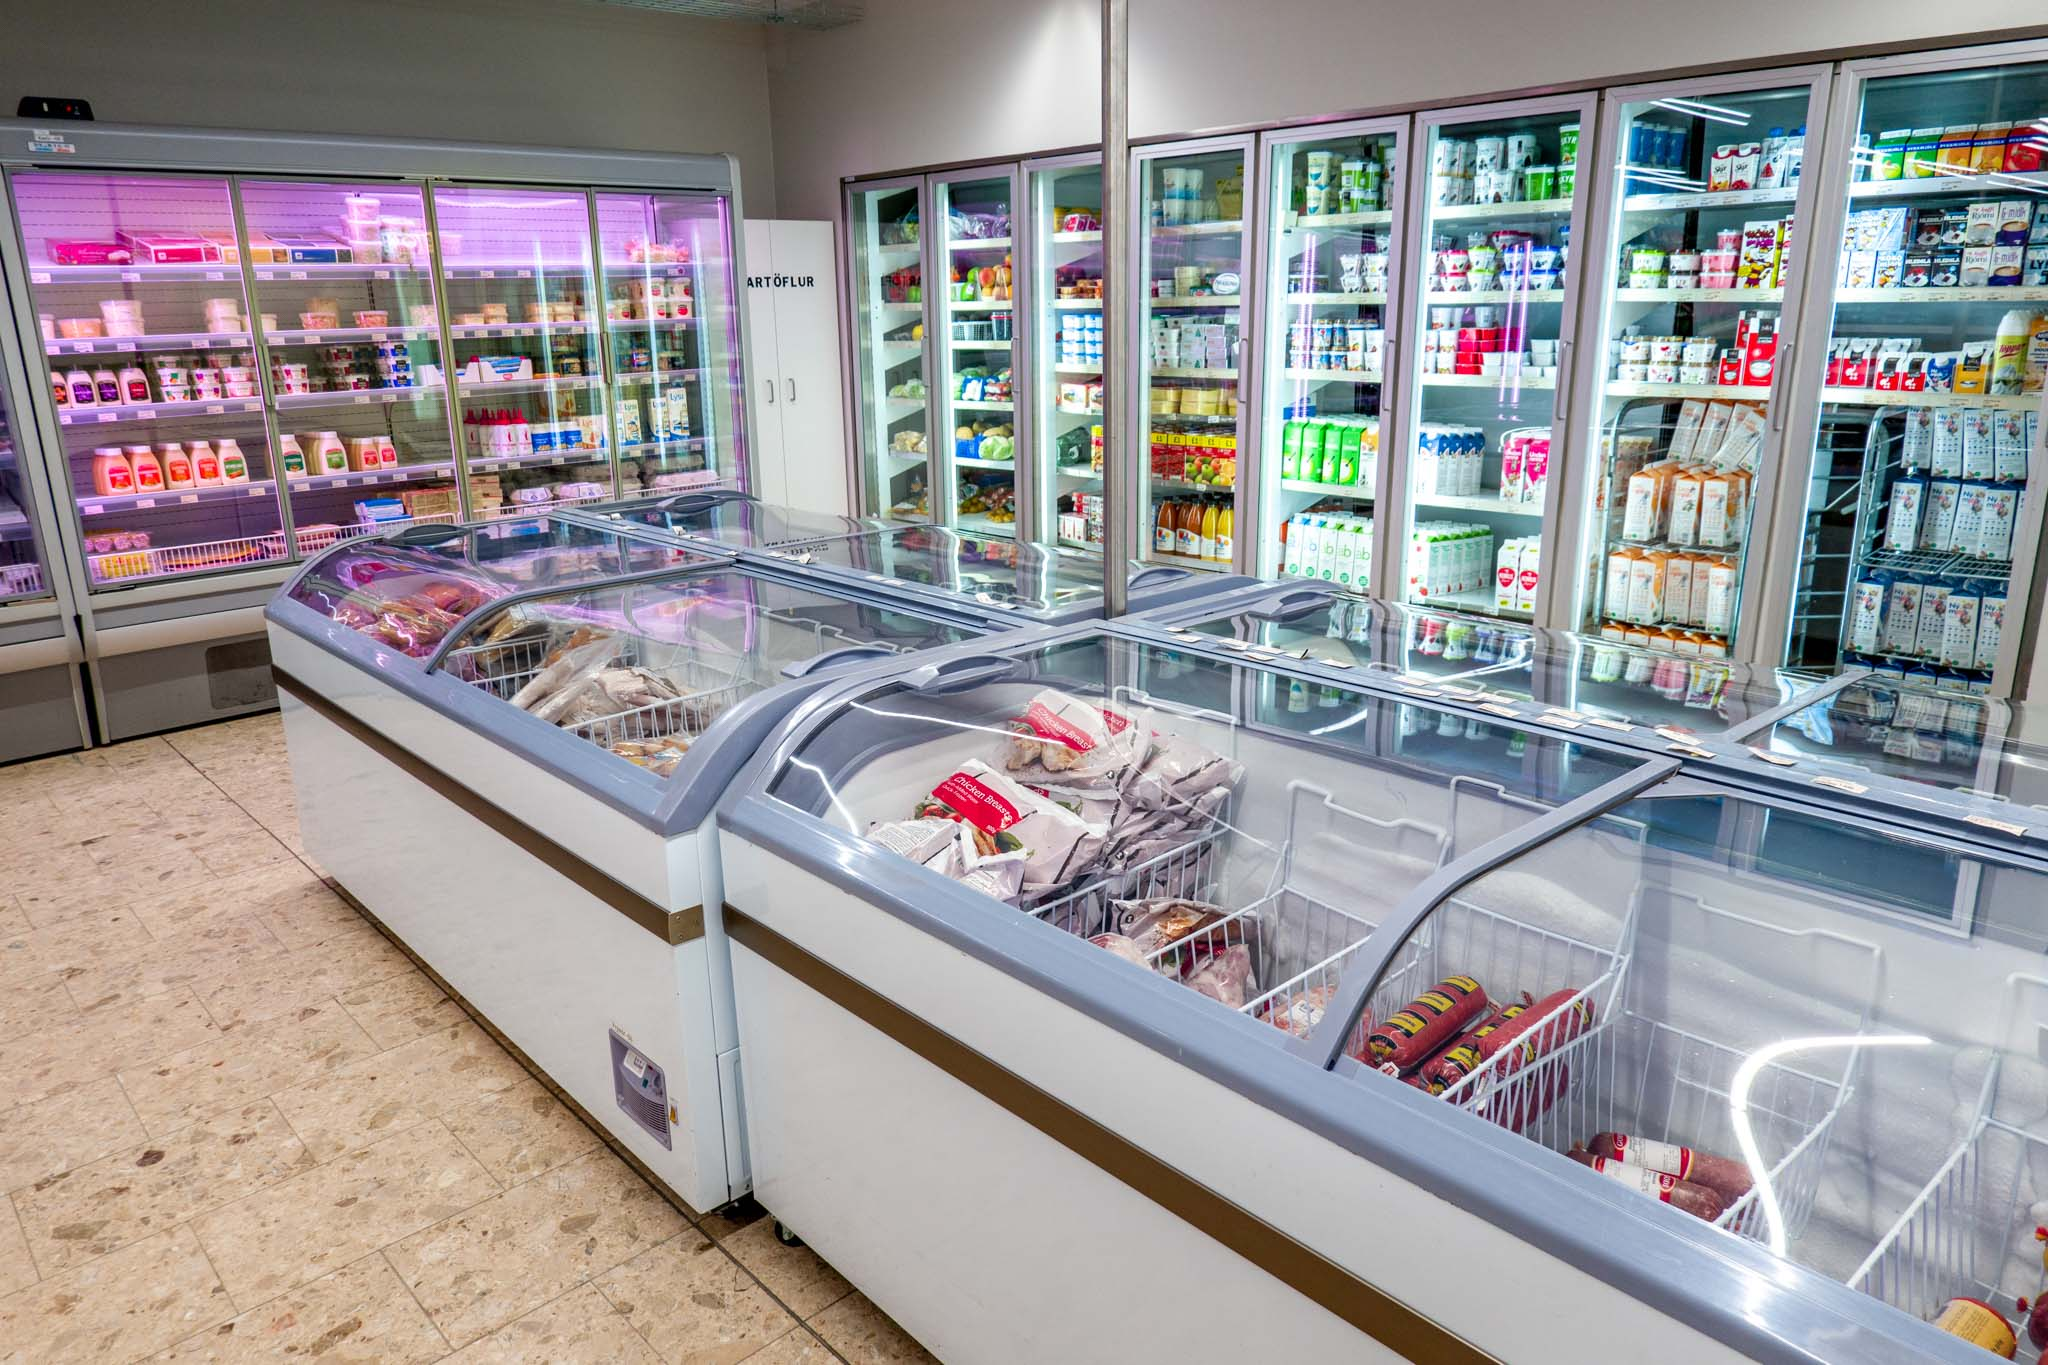 Refrigerators and frozen foods are available at the gas stations in Iceland